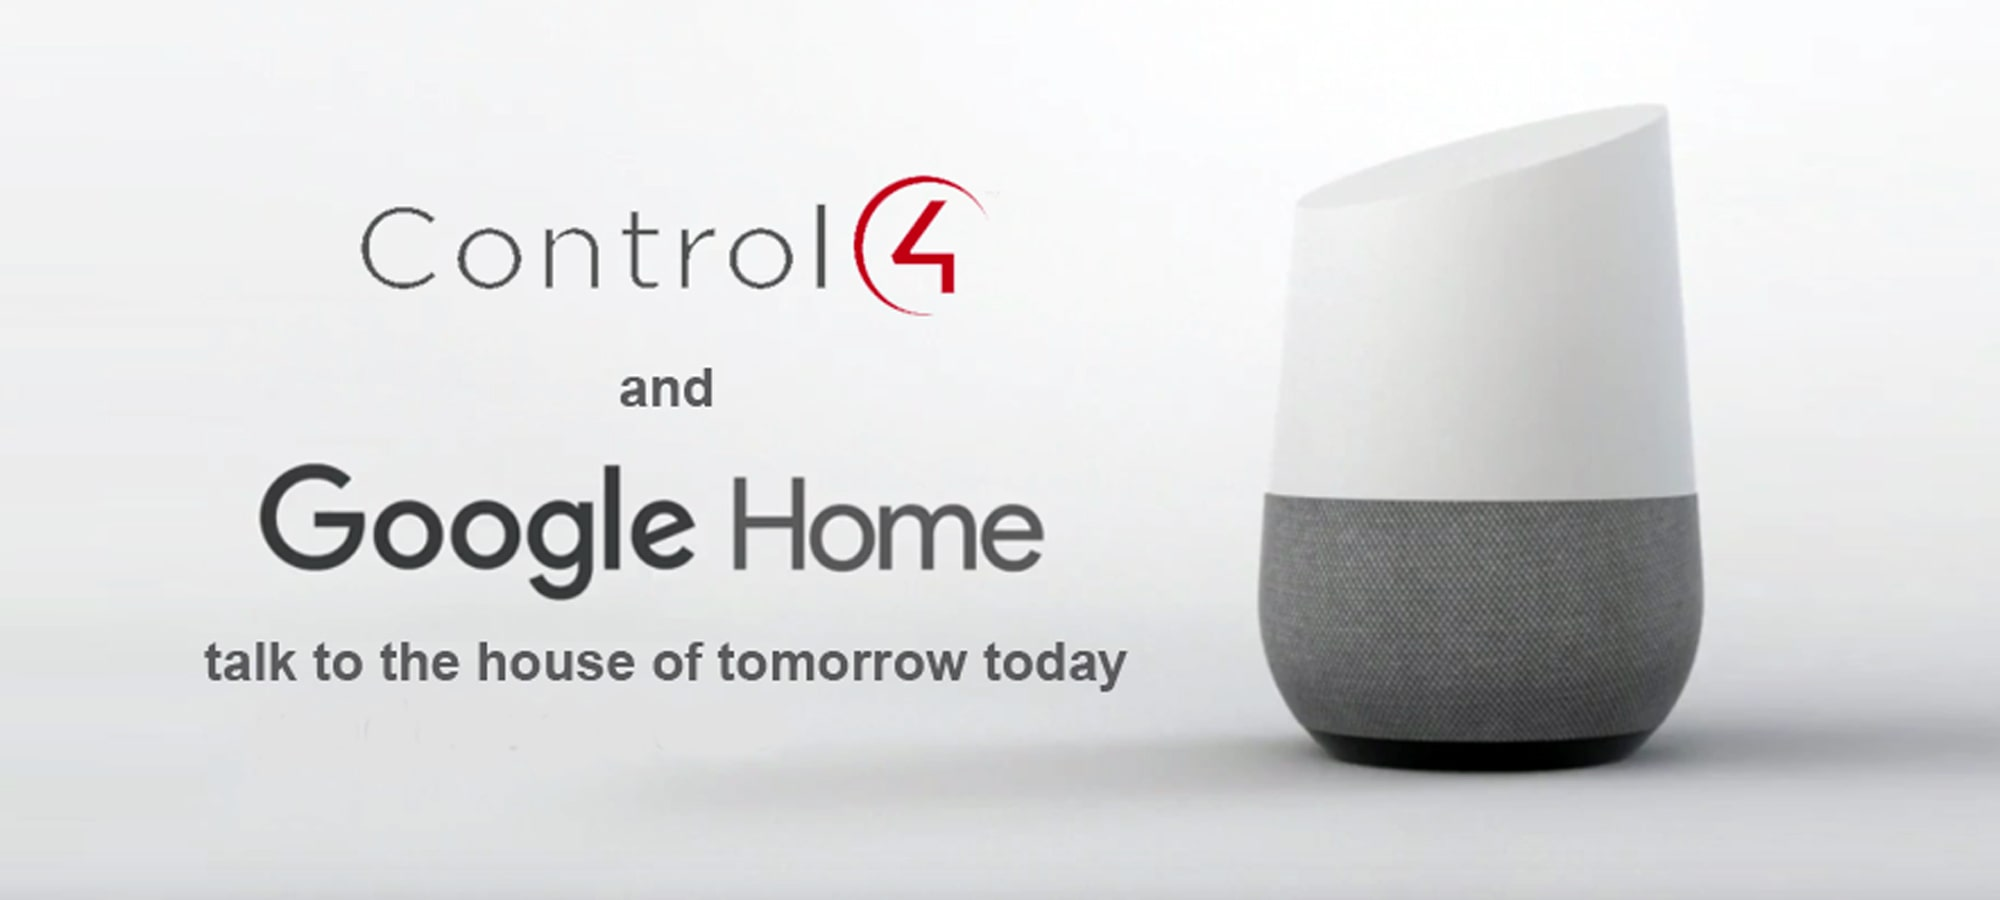 control4-google-home Is Control4 Home Automation Worth the Money?